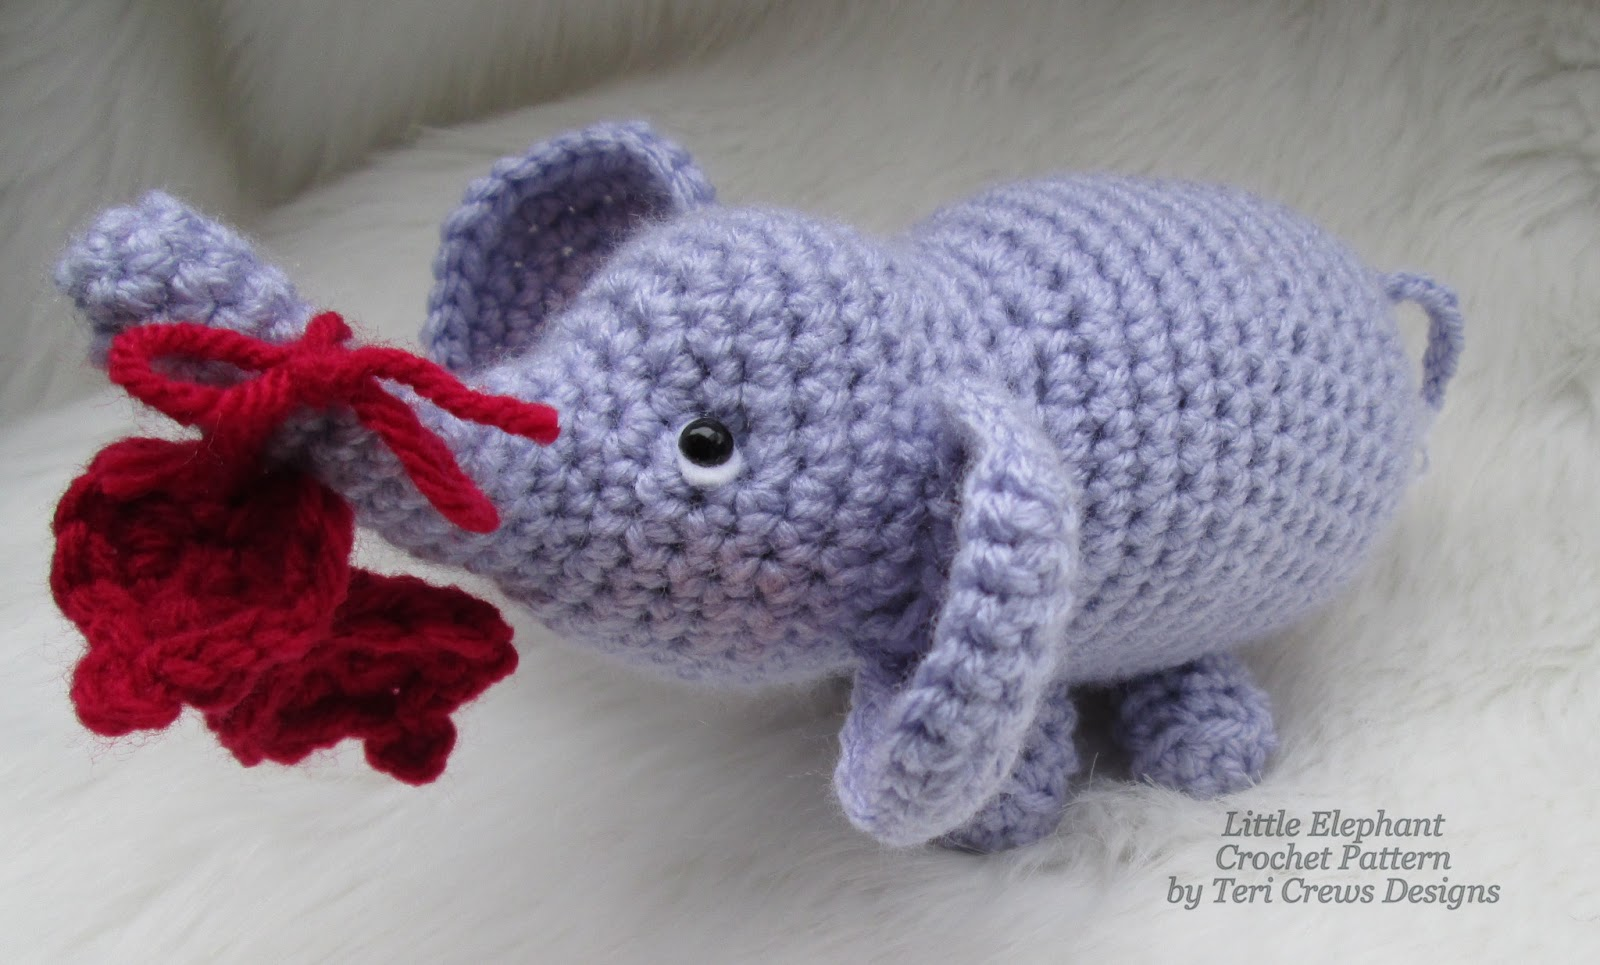 Teris Blog: Free Little Elephant Crochet Pattern